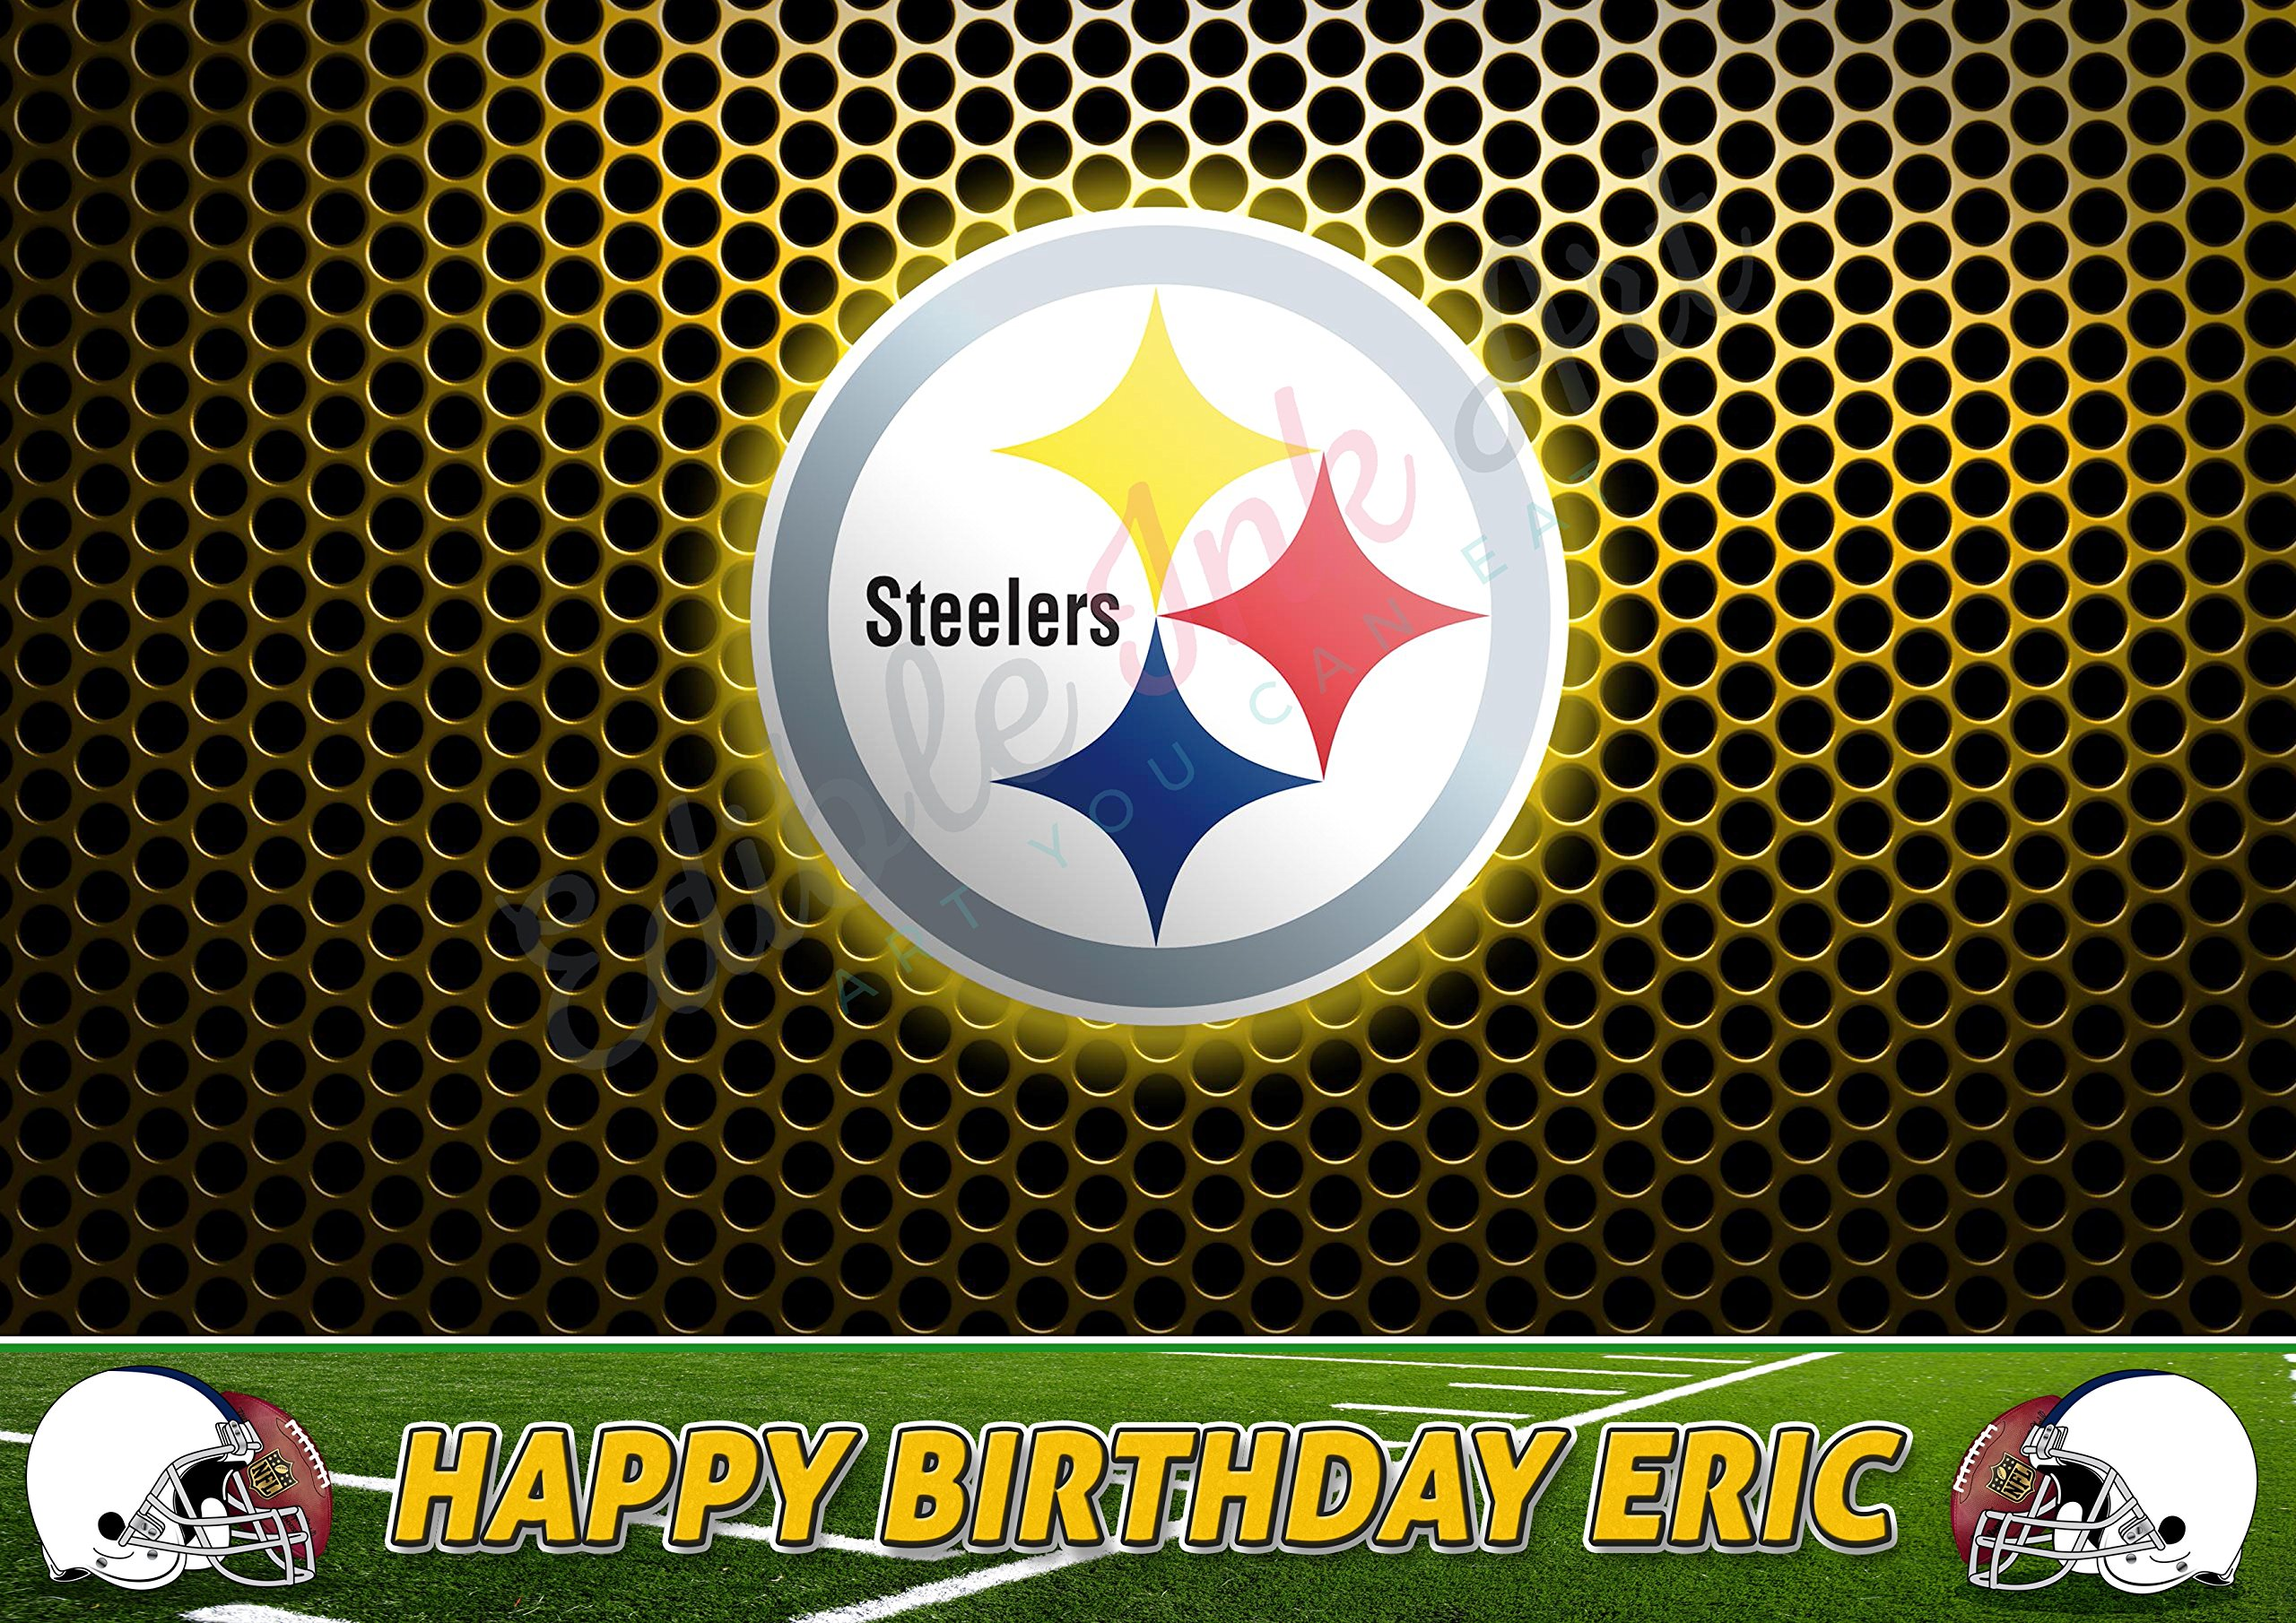 Pittsburgh Steelers NFL Edible Cake Image Topper Personalized Icing Sugar Paper A4 Sheet Edible Frosting Photo Cake 1/4 ~ Best Quality Edible Image for cake